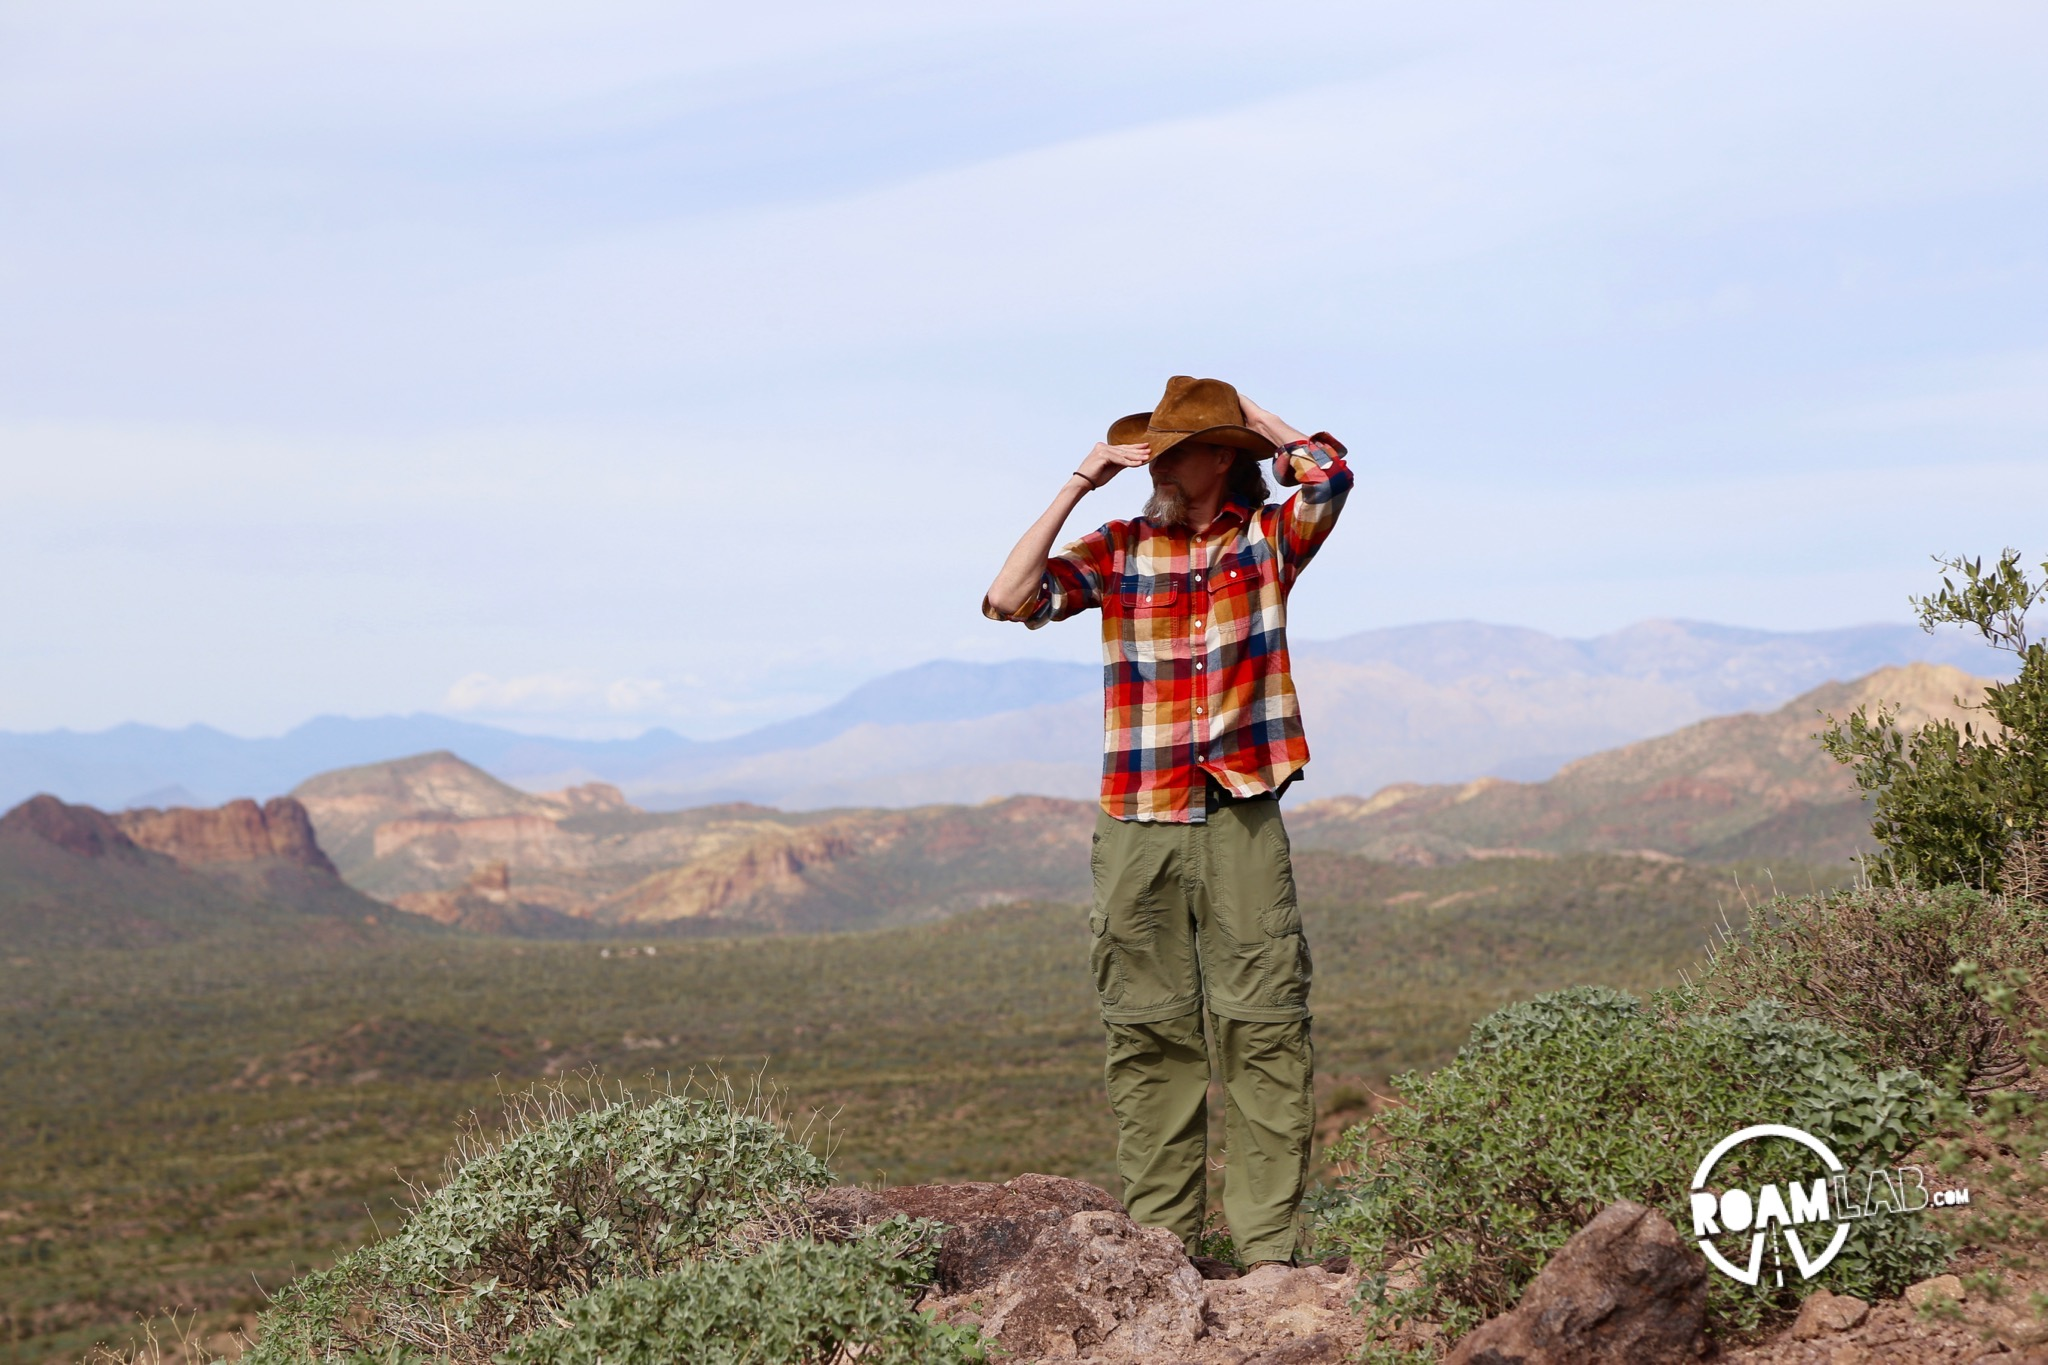 Lost Dutchman State Park may be crowded and noisy, but it has a view that you cannot find anywhere else.